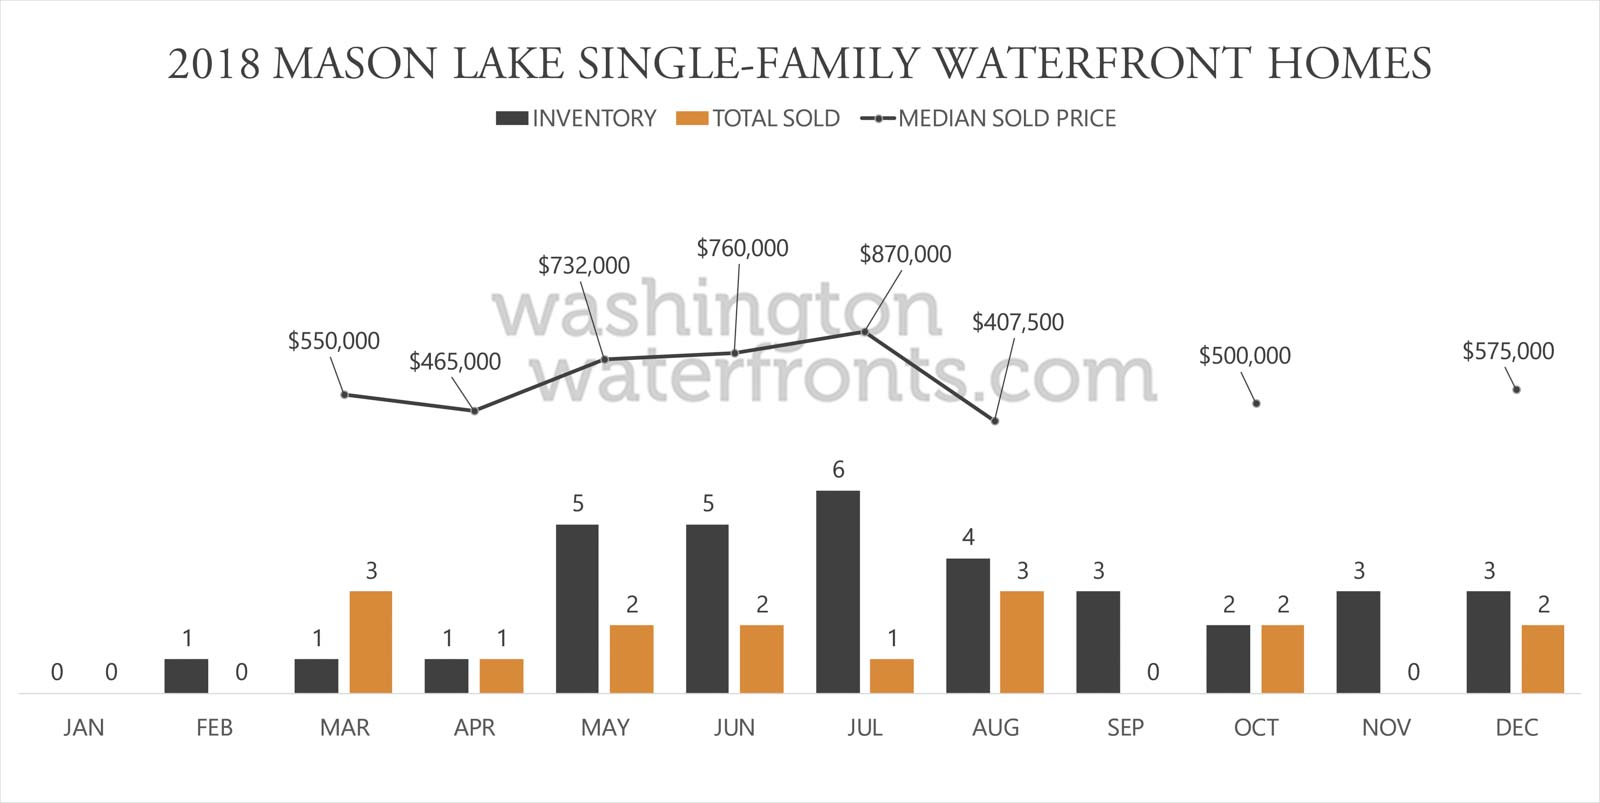 Mason Lake Waterfront Inventory